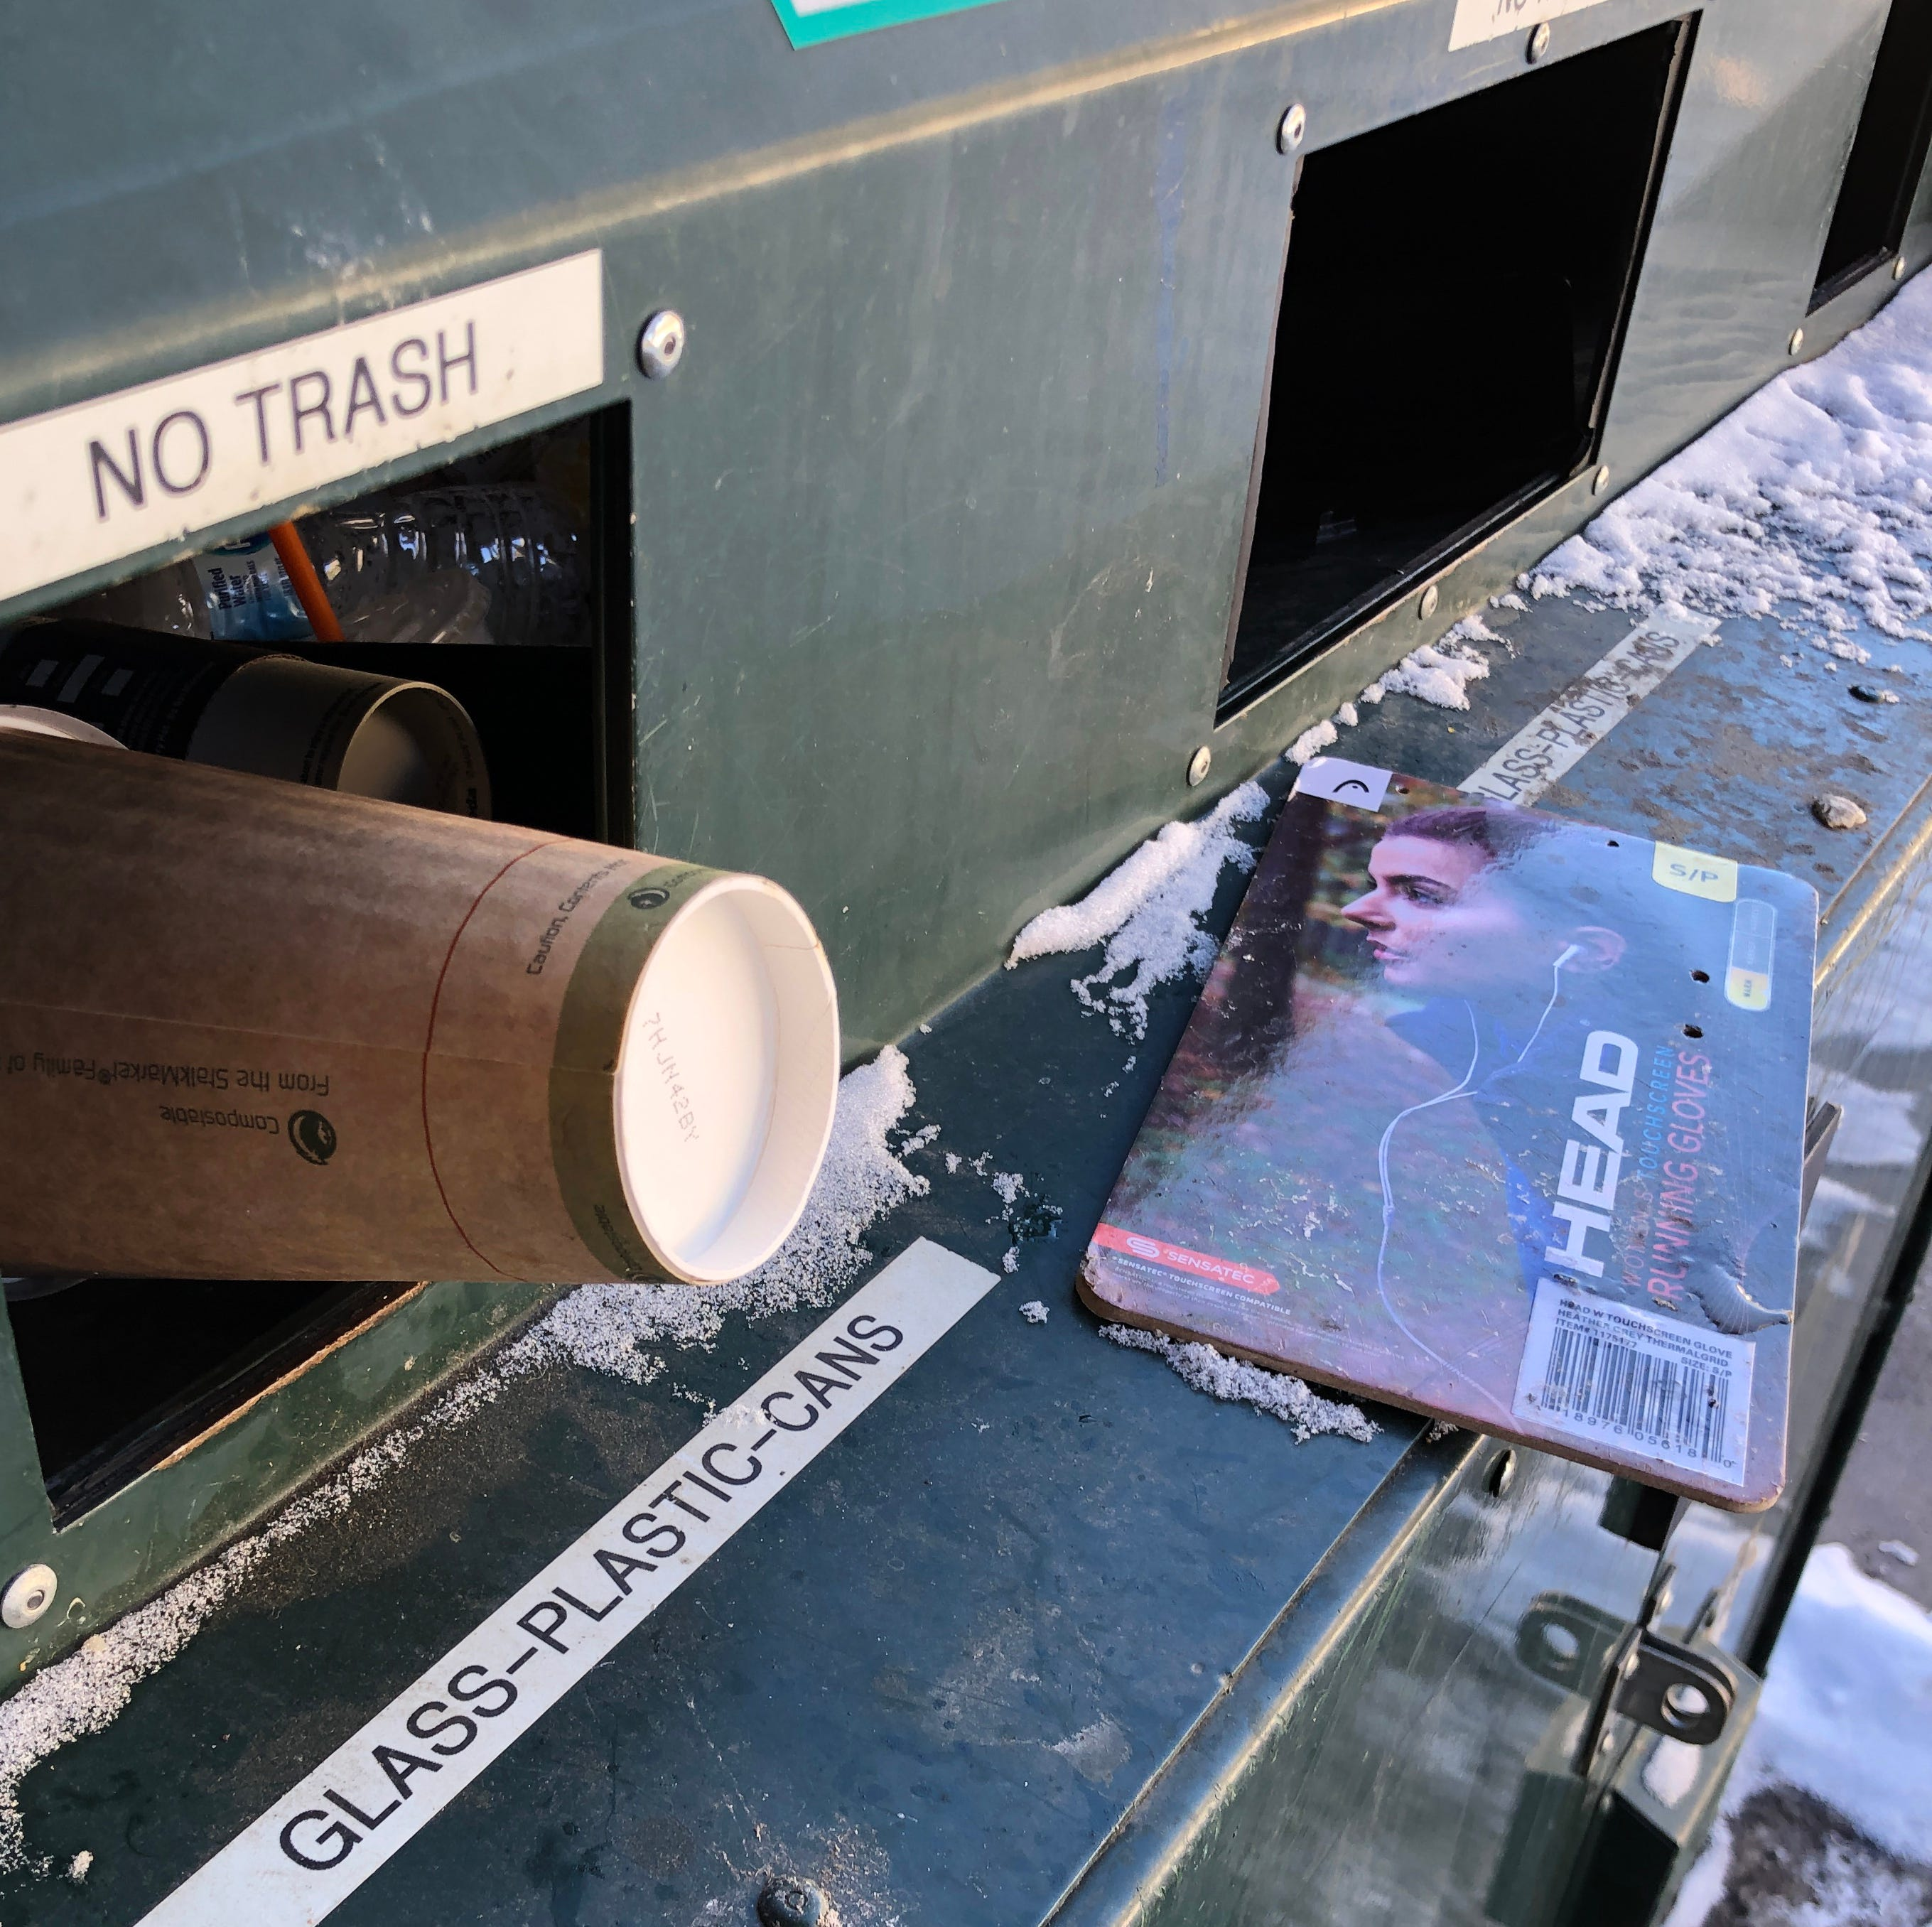 Trash hangs out of an overflowing recycling bin near the visitor's center at Rocky Mountain National Park in Colorado.